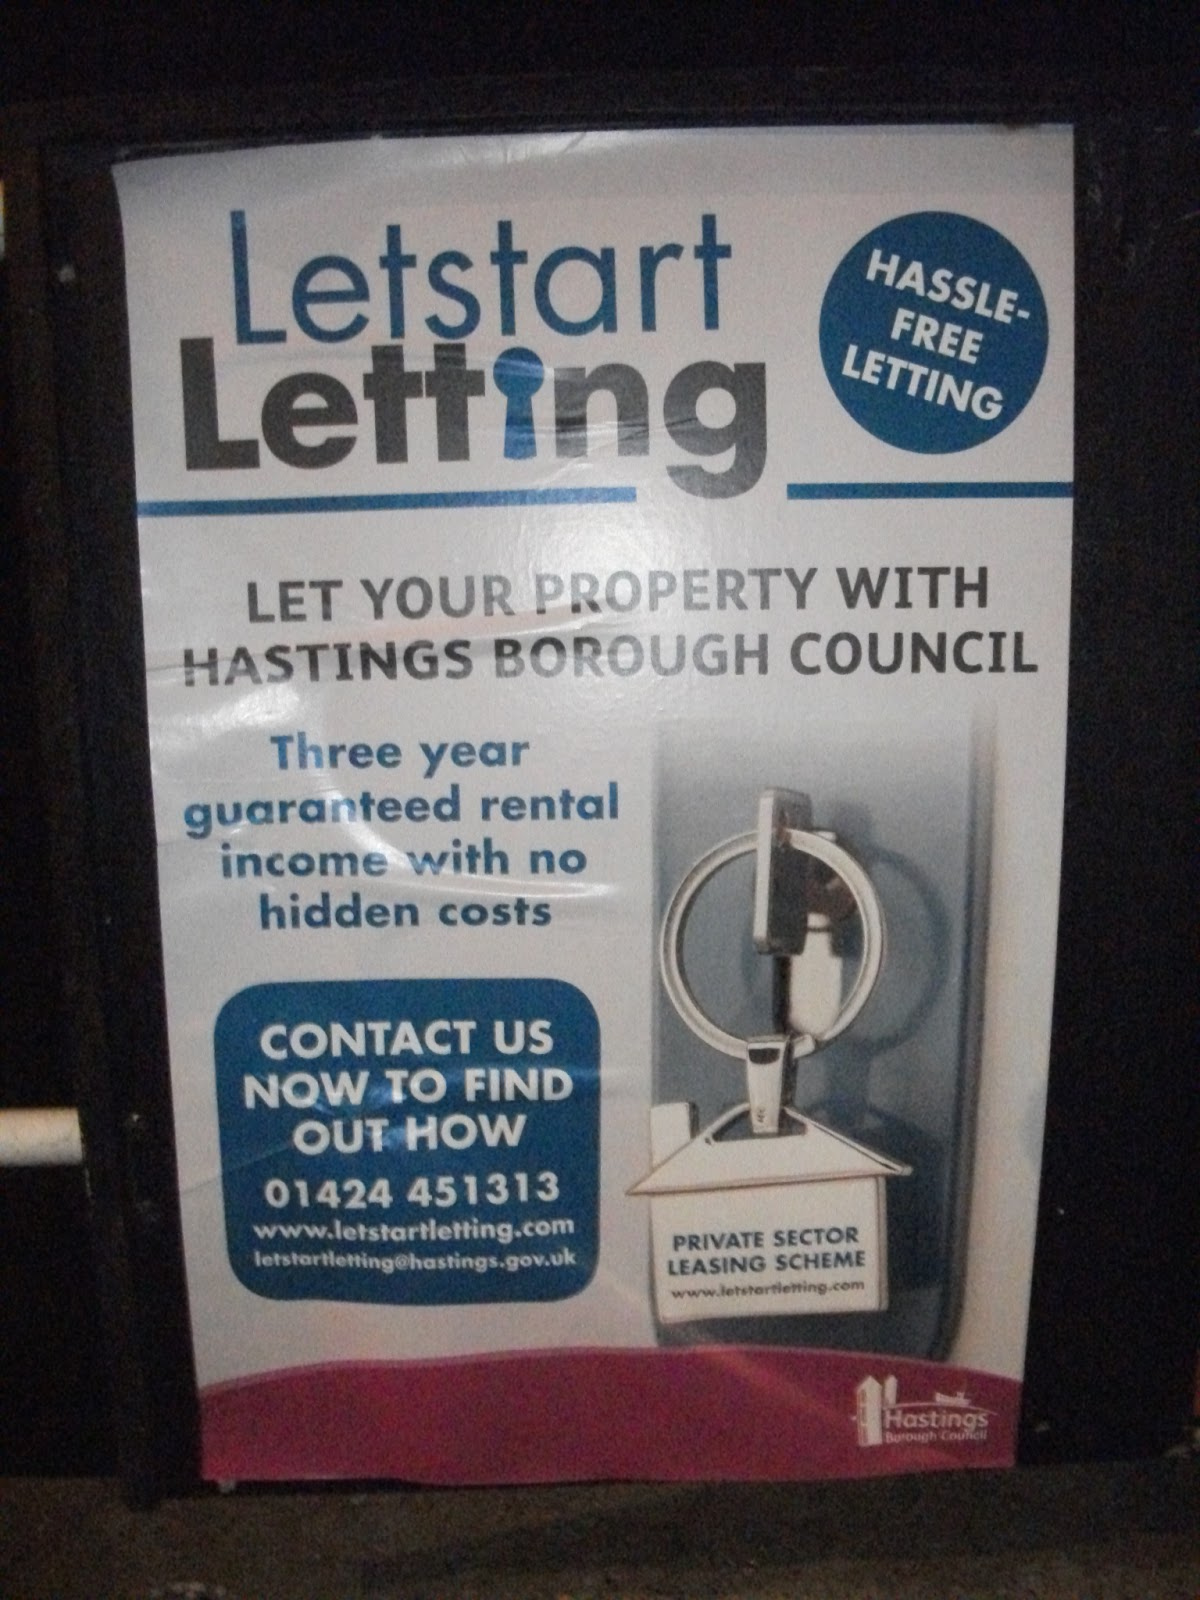 Steve on Hastings: Hastings Social Lettings Agency